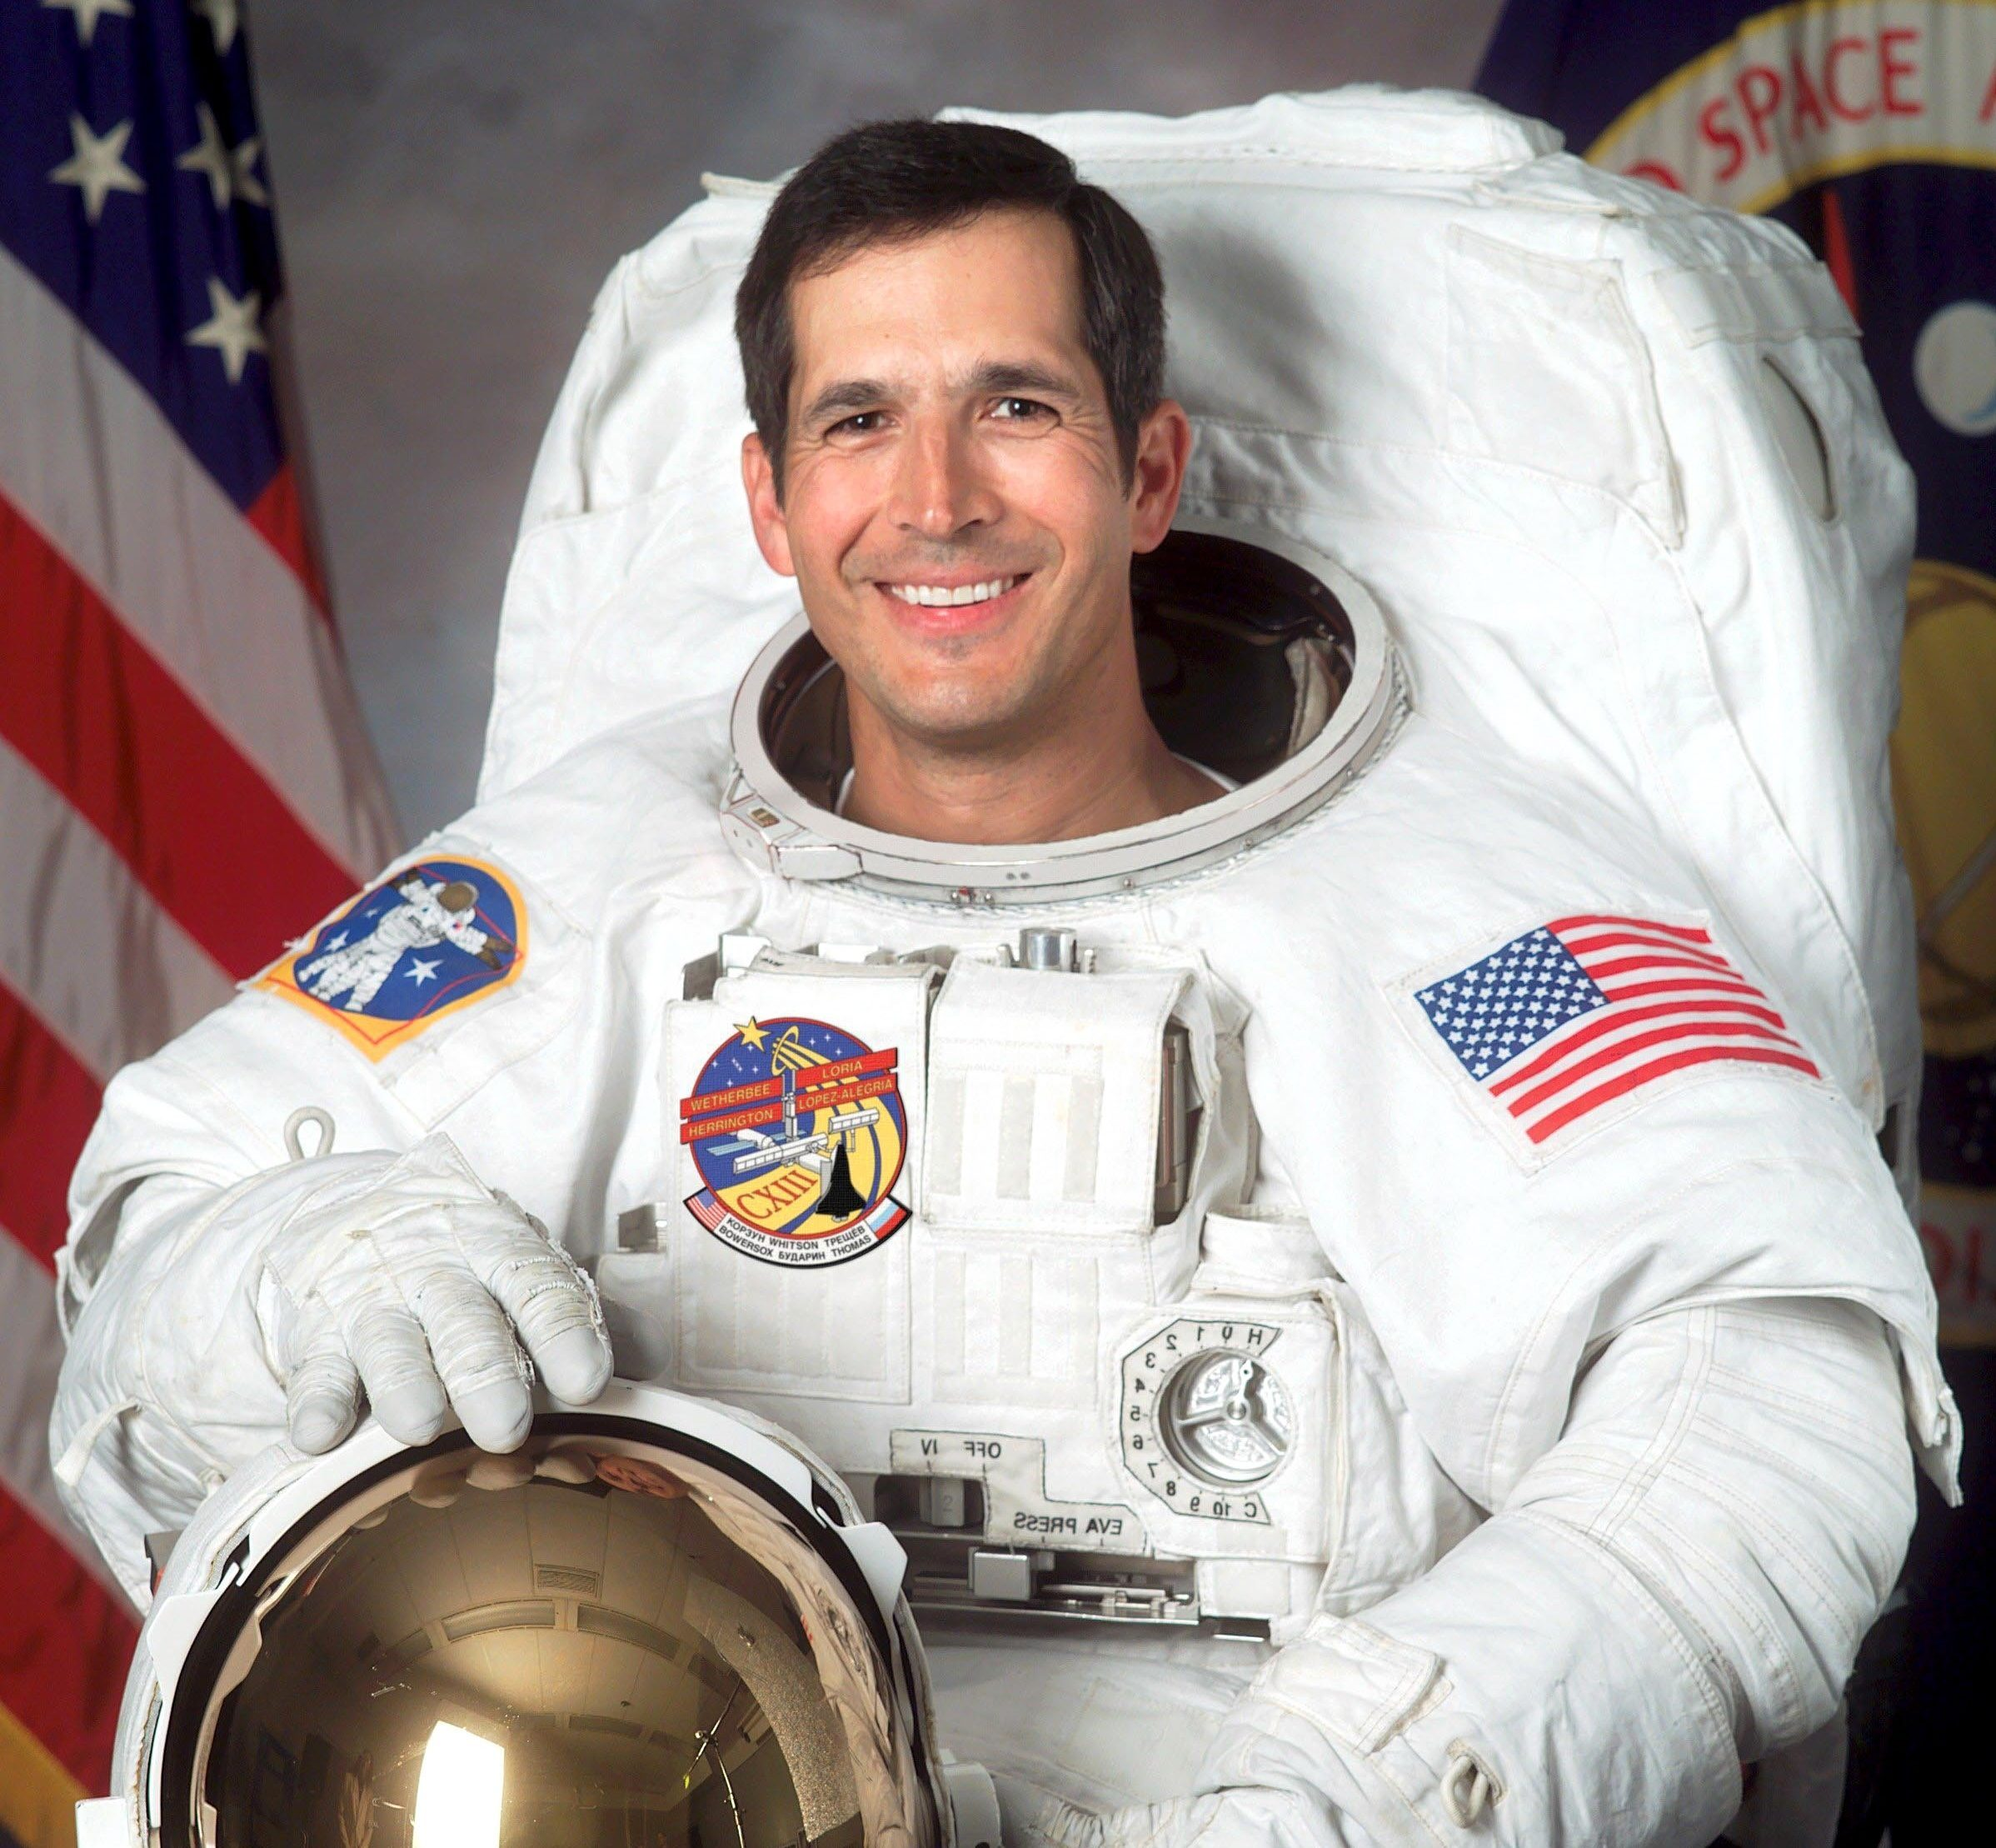 Mandatory Credit: Photo by Shutterstock (395779e) John B Herrington - 02 Apr 2002 INTERNATIONAL SPACE STATION MISSION STS 113 - SEP 2002